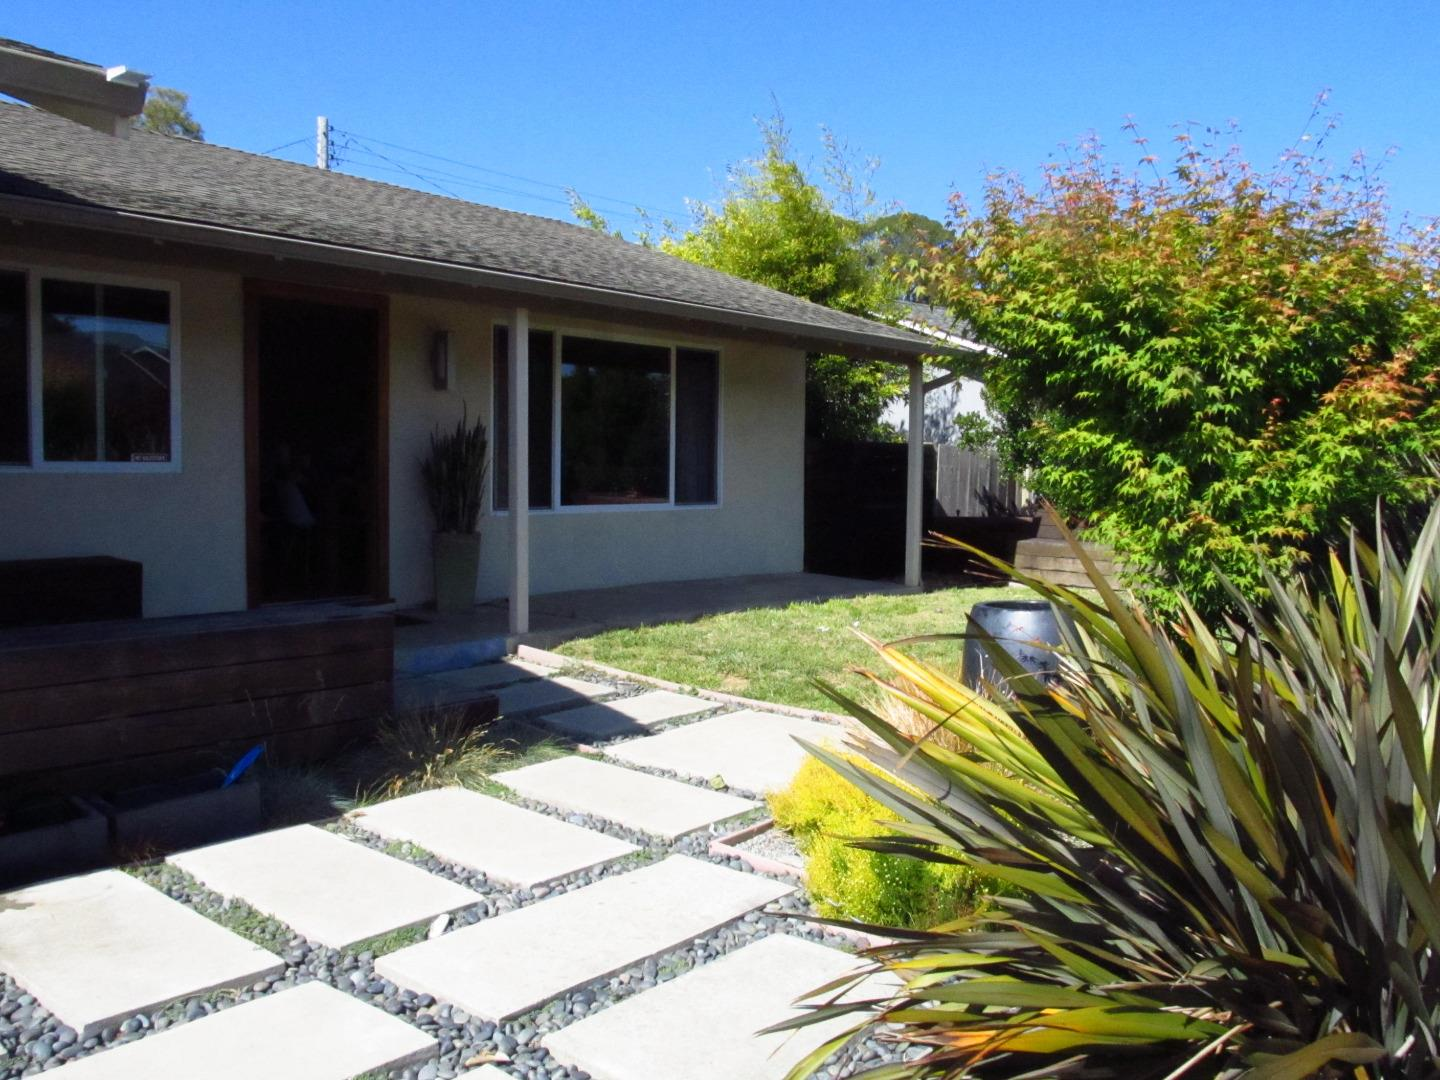 Additional photo for property listing at 614 Cedar Street  Aptos, California 95003 Estados Unidos